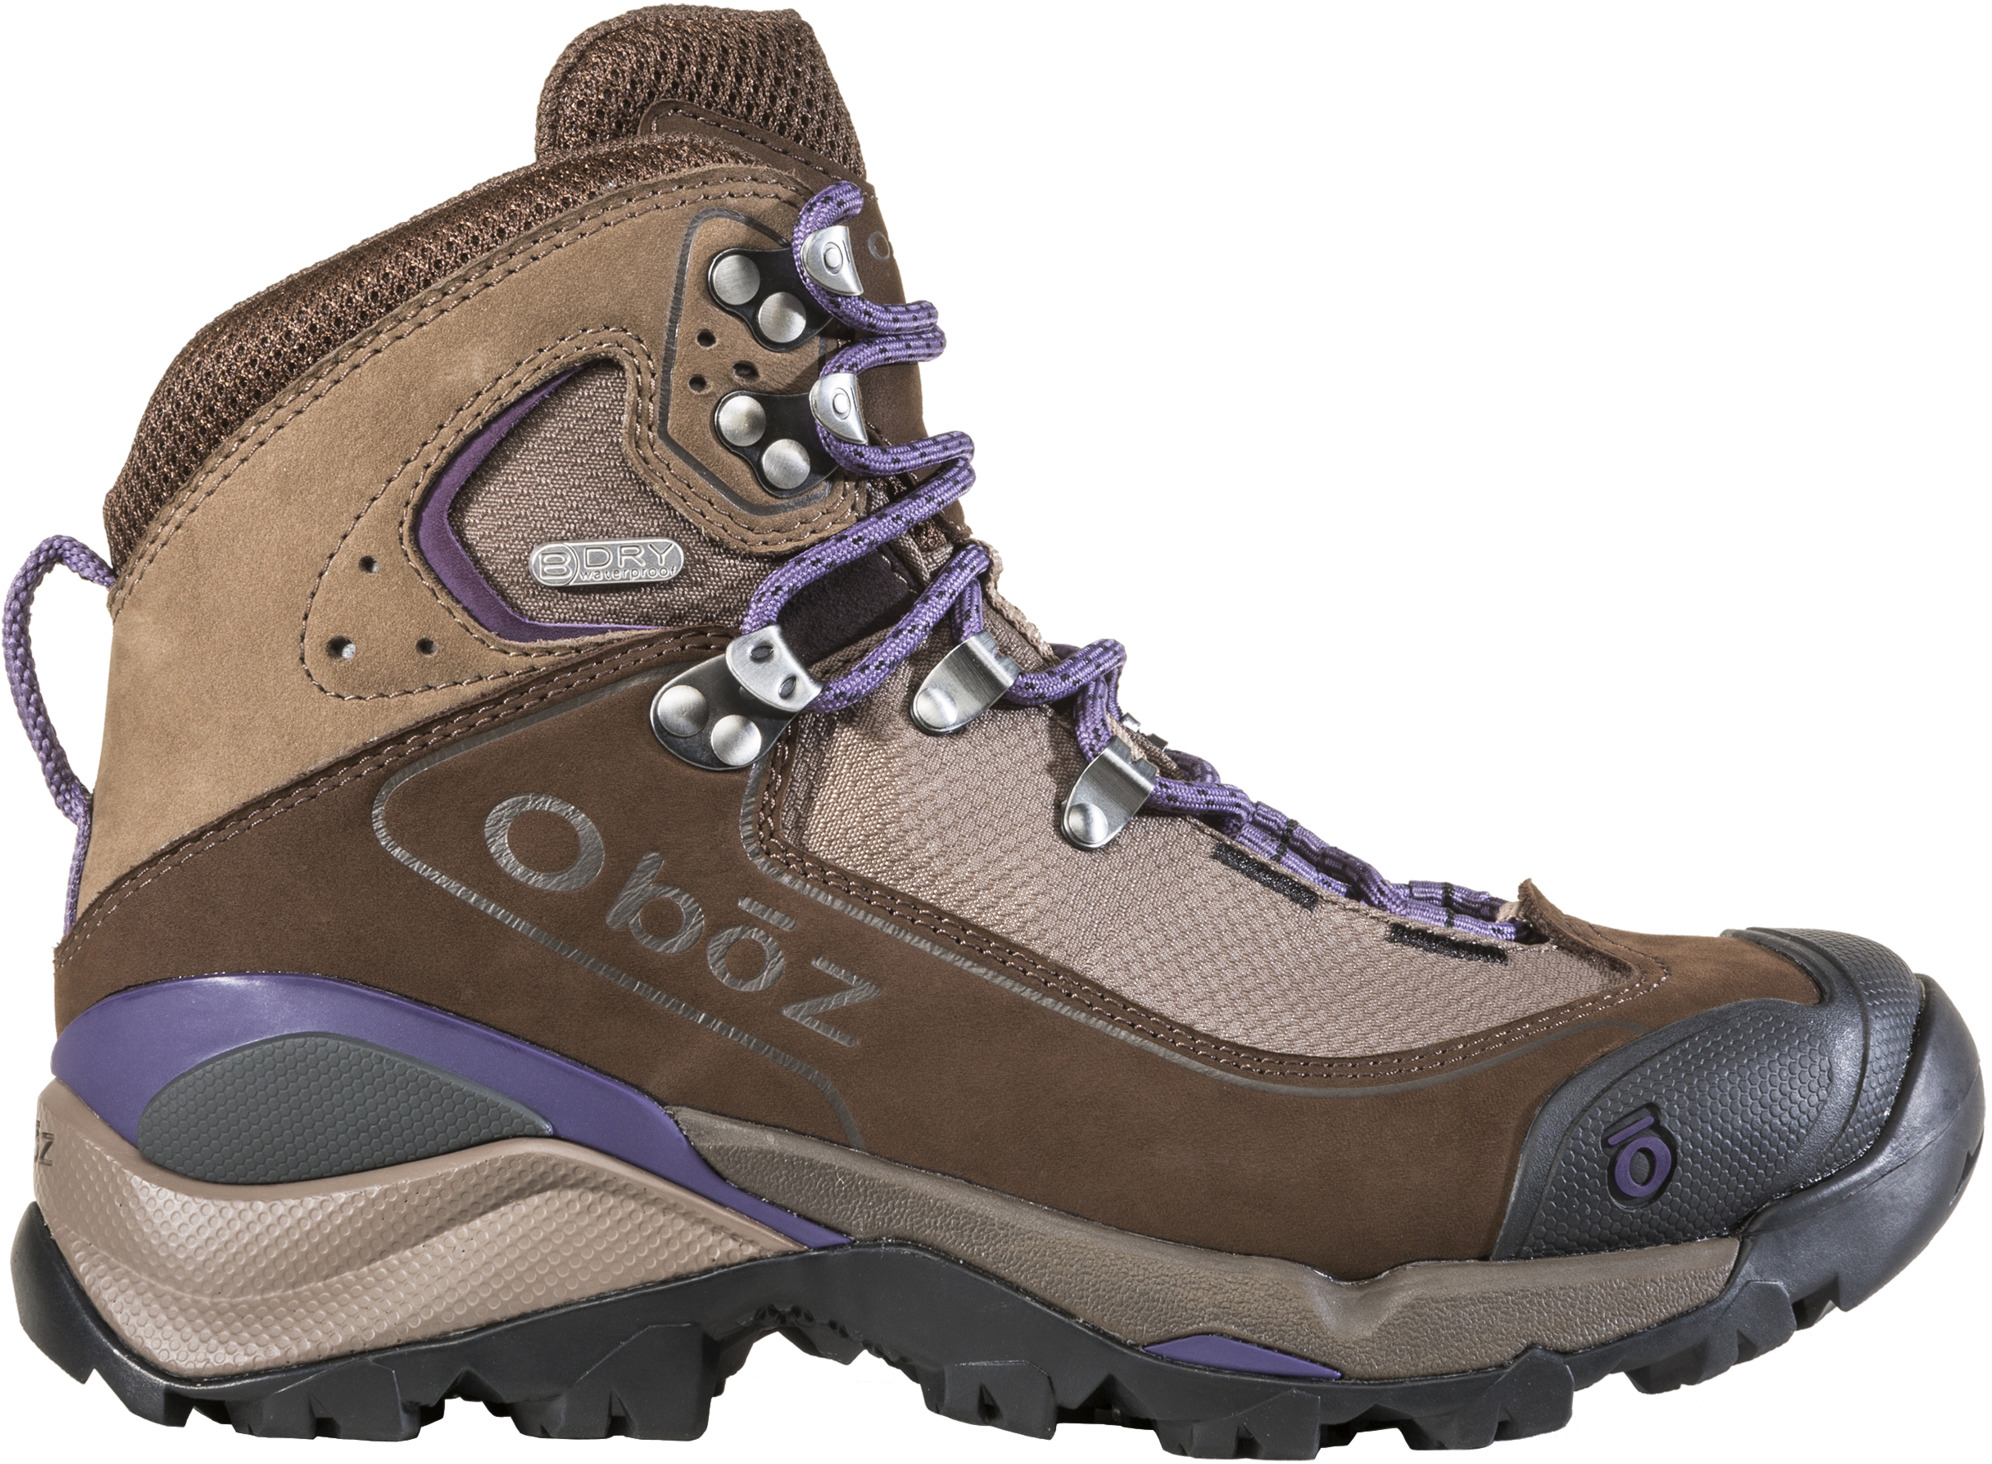 2a4daec396e5 Oboz Wind River III Hiking Boots - Women s